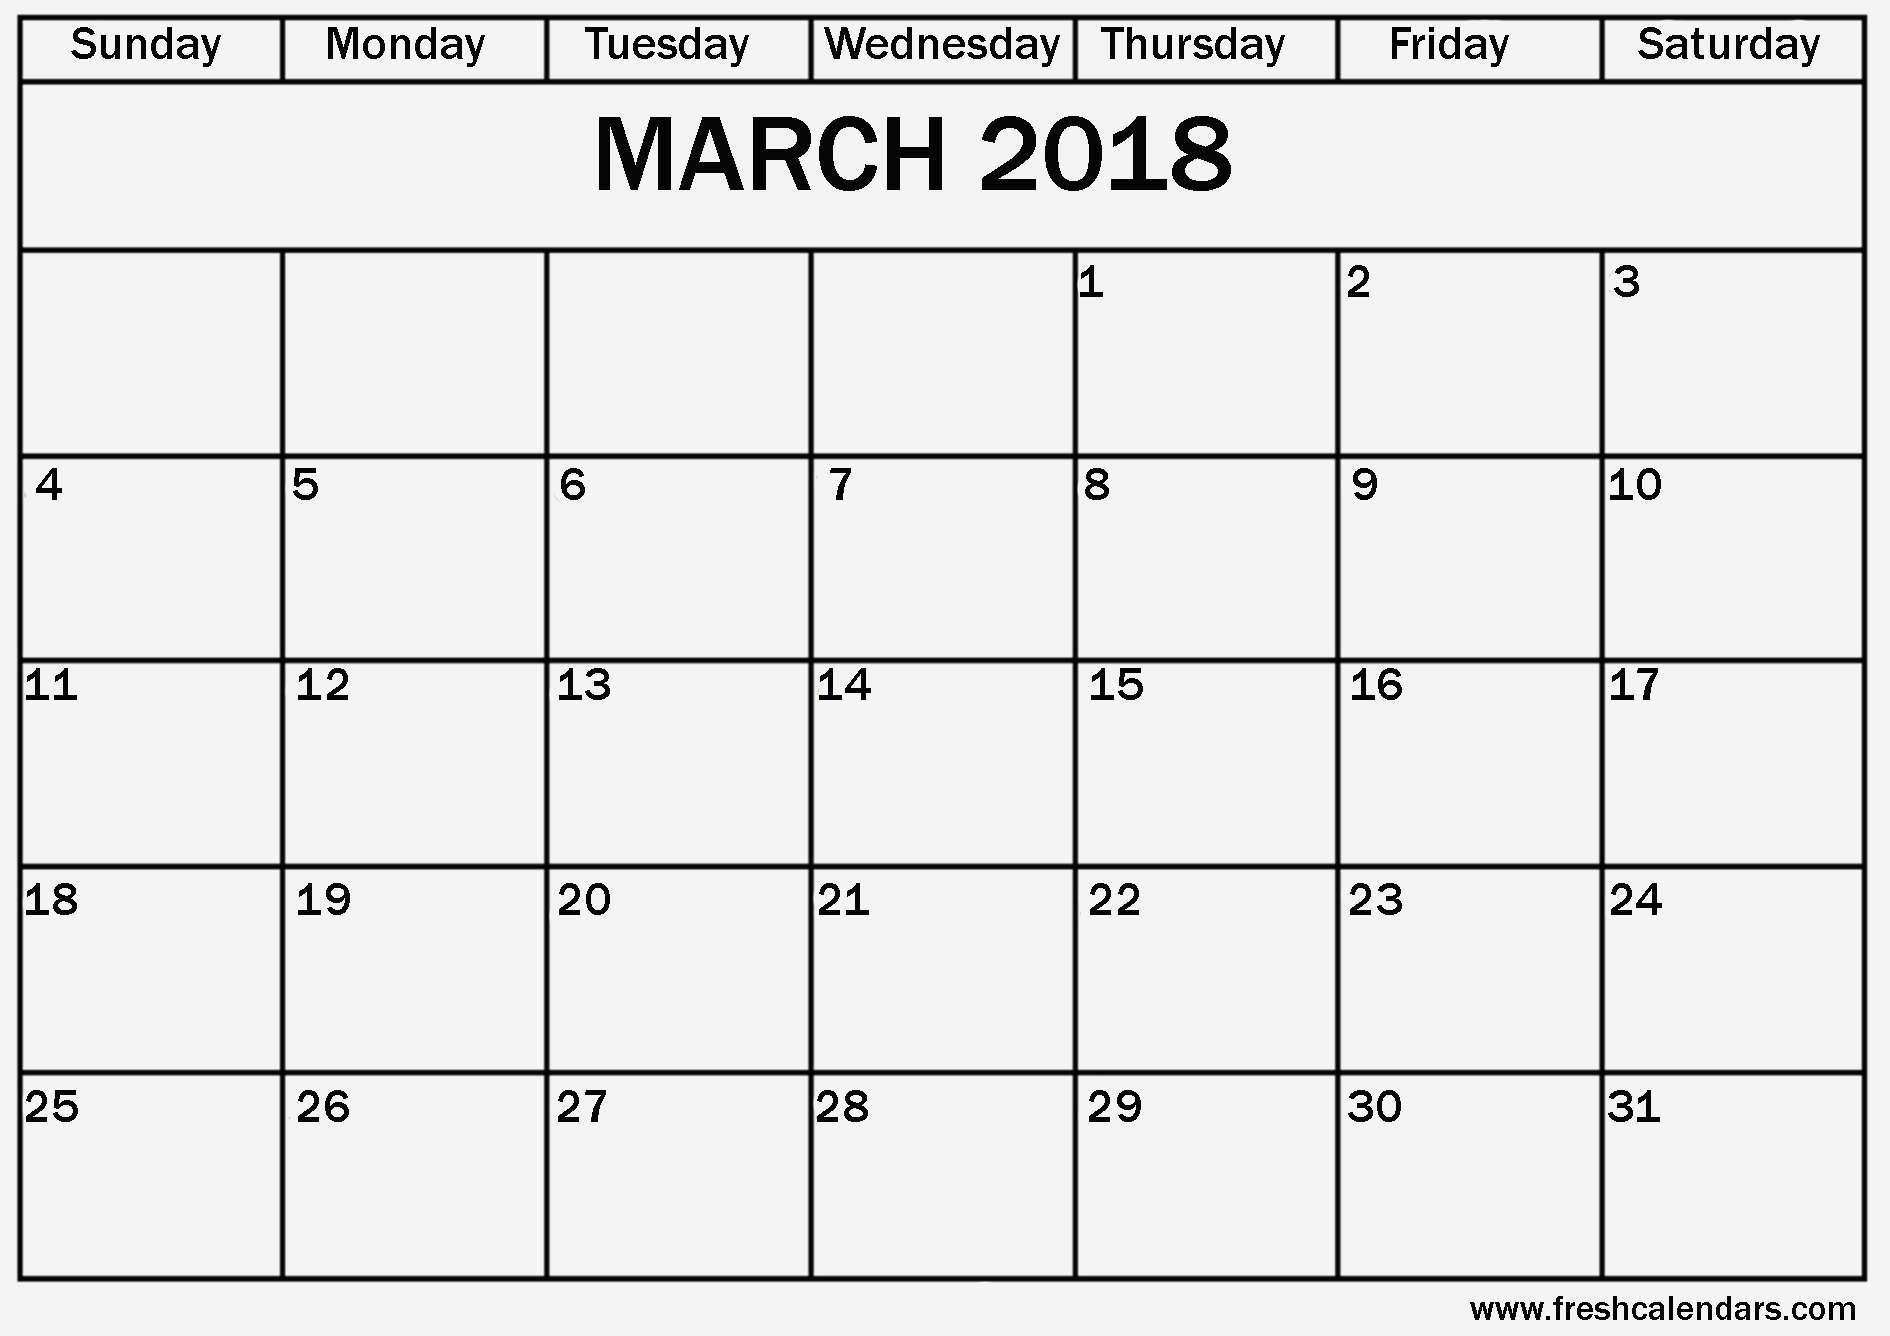 March 2019 Calendar Uk Printable Más Caliente Tips Intended for Free Printable Word Calendar 2019 Calendar Of March 2019 Calendar Uk Printable Más Recientemente Liberado June 2019 Calendar Word Lara Expolicenciaslatam